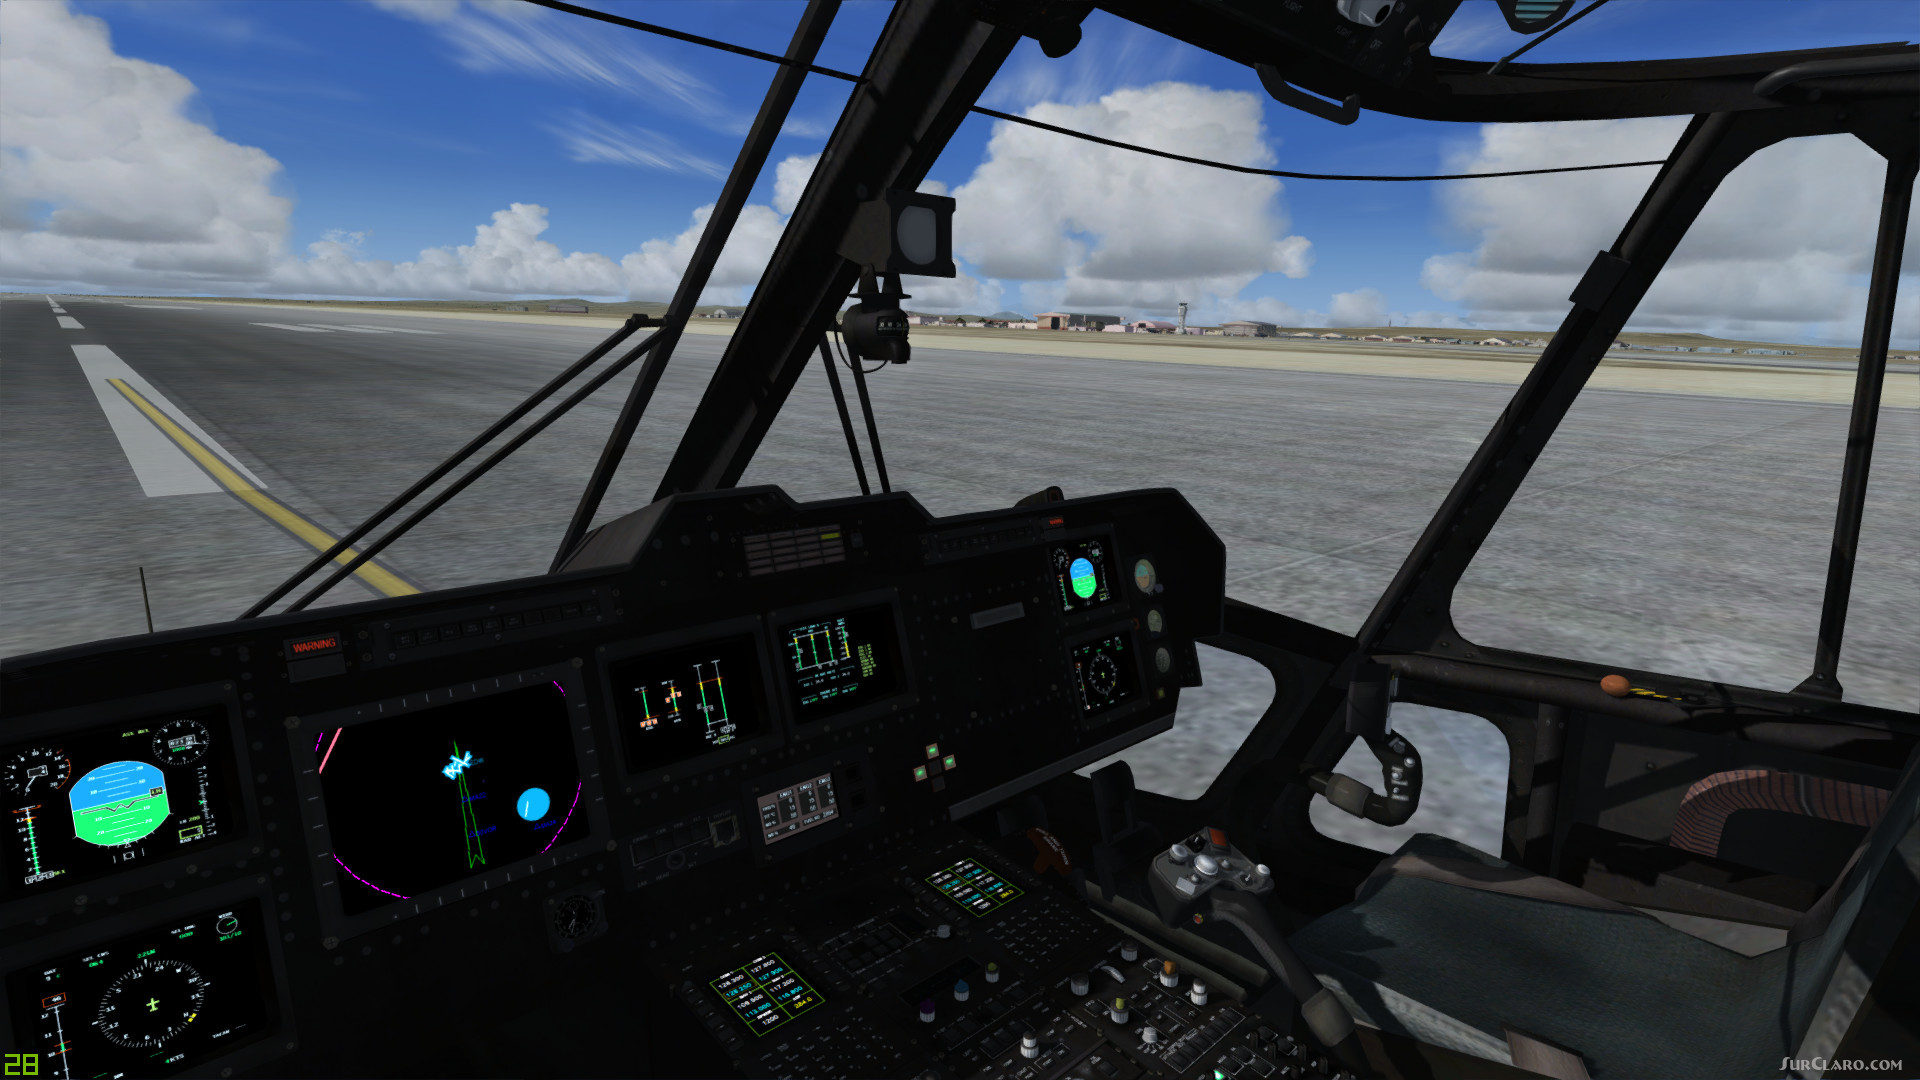 FSX P3D Sikorsky CH-53 Super Stallion Helicopter